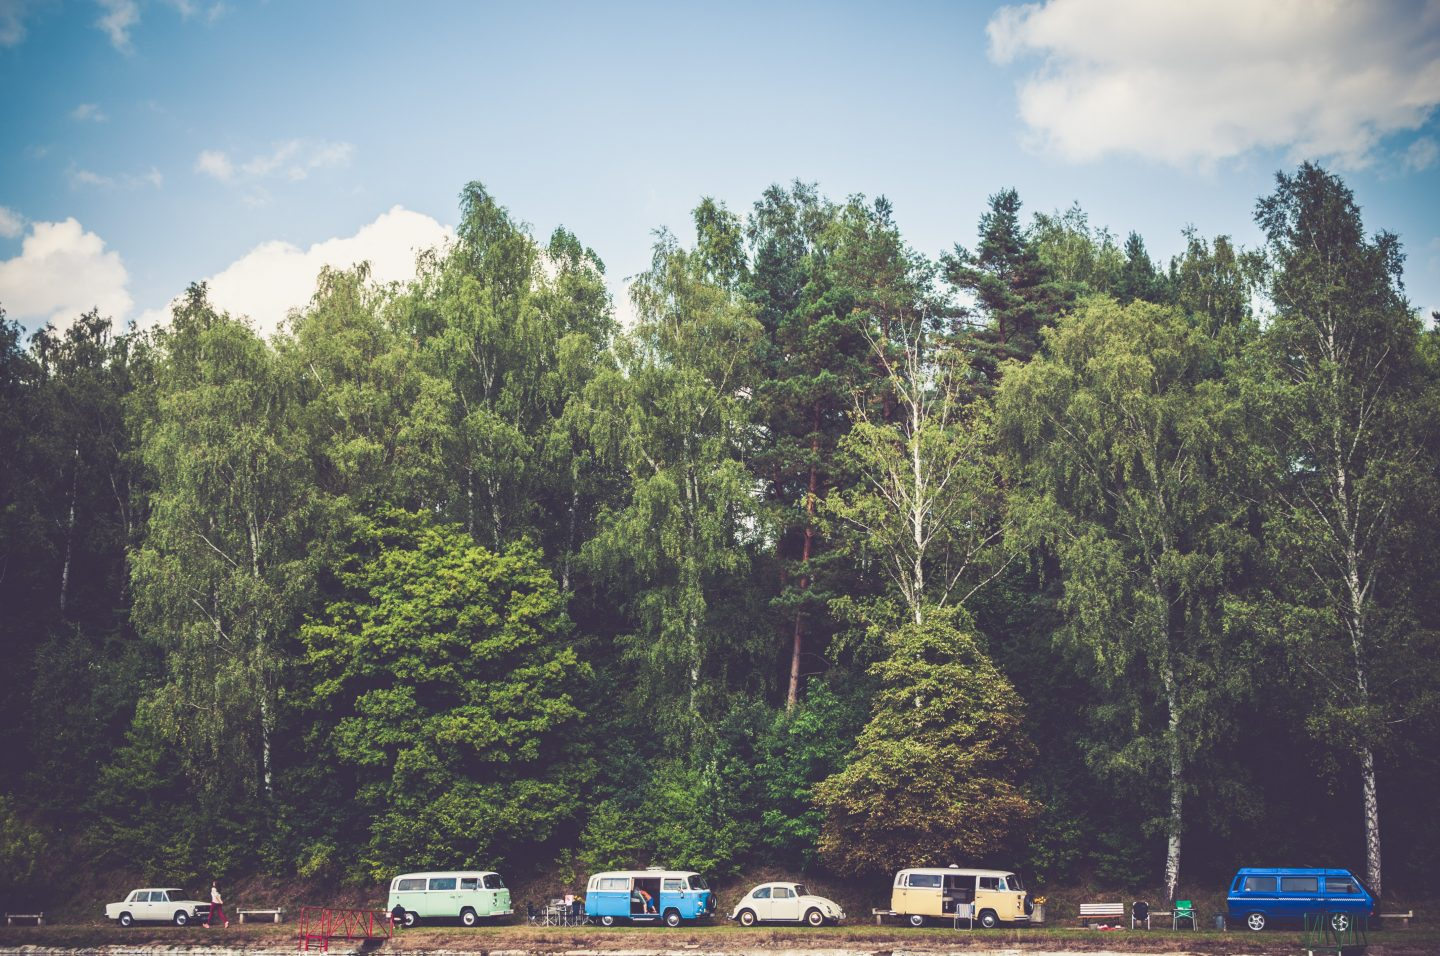 Getting Your Campervan Ready for Summer Adventures